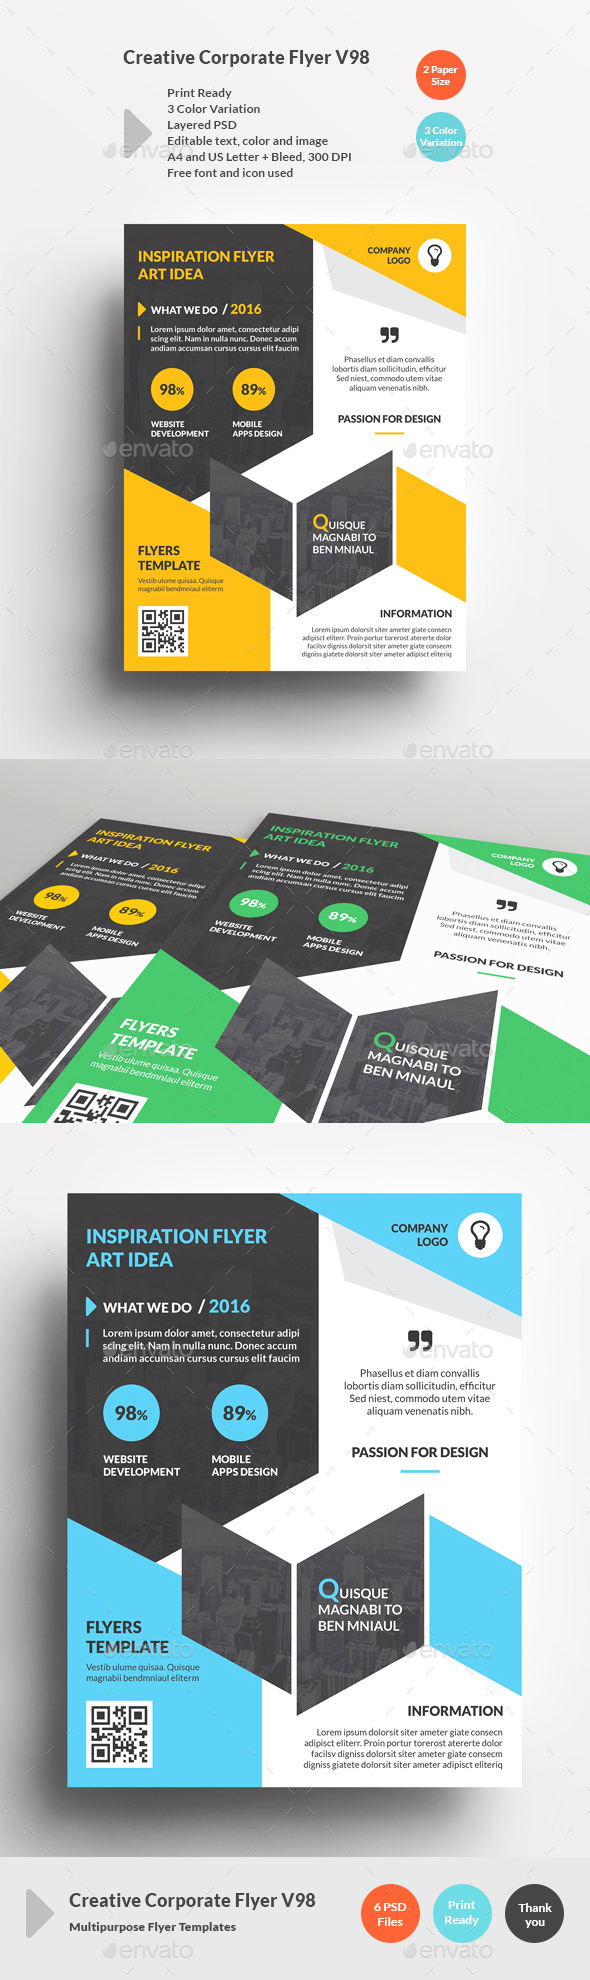 Creative Corporate Flyer V98 - Corporate Flyers